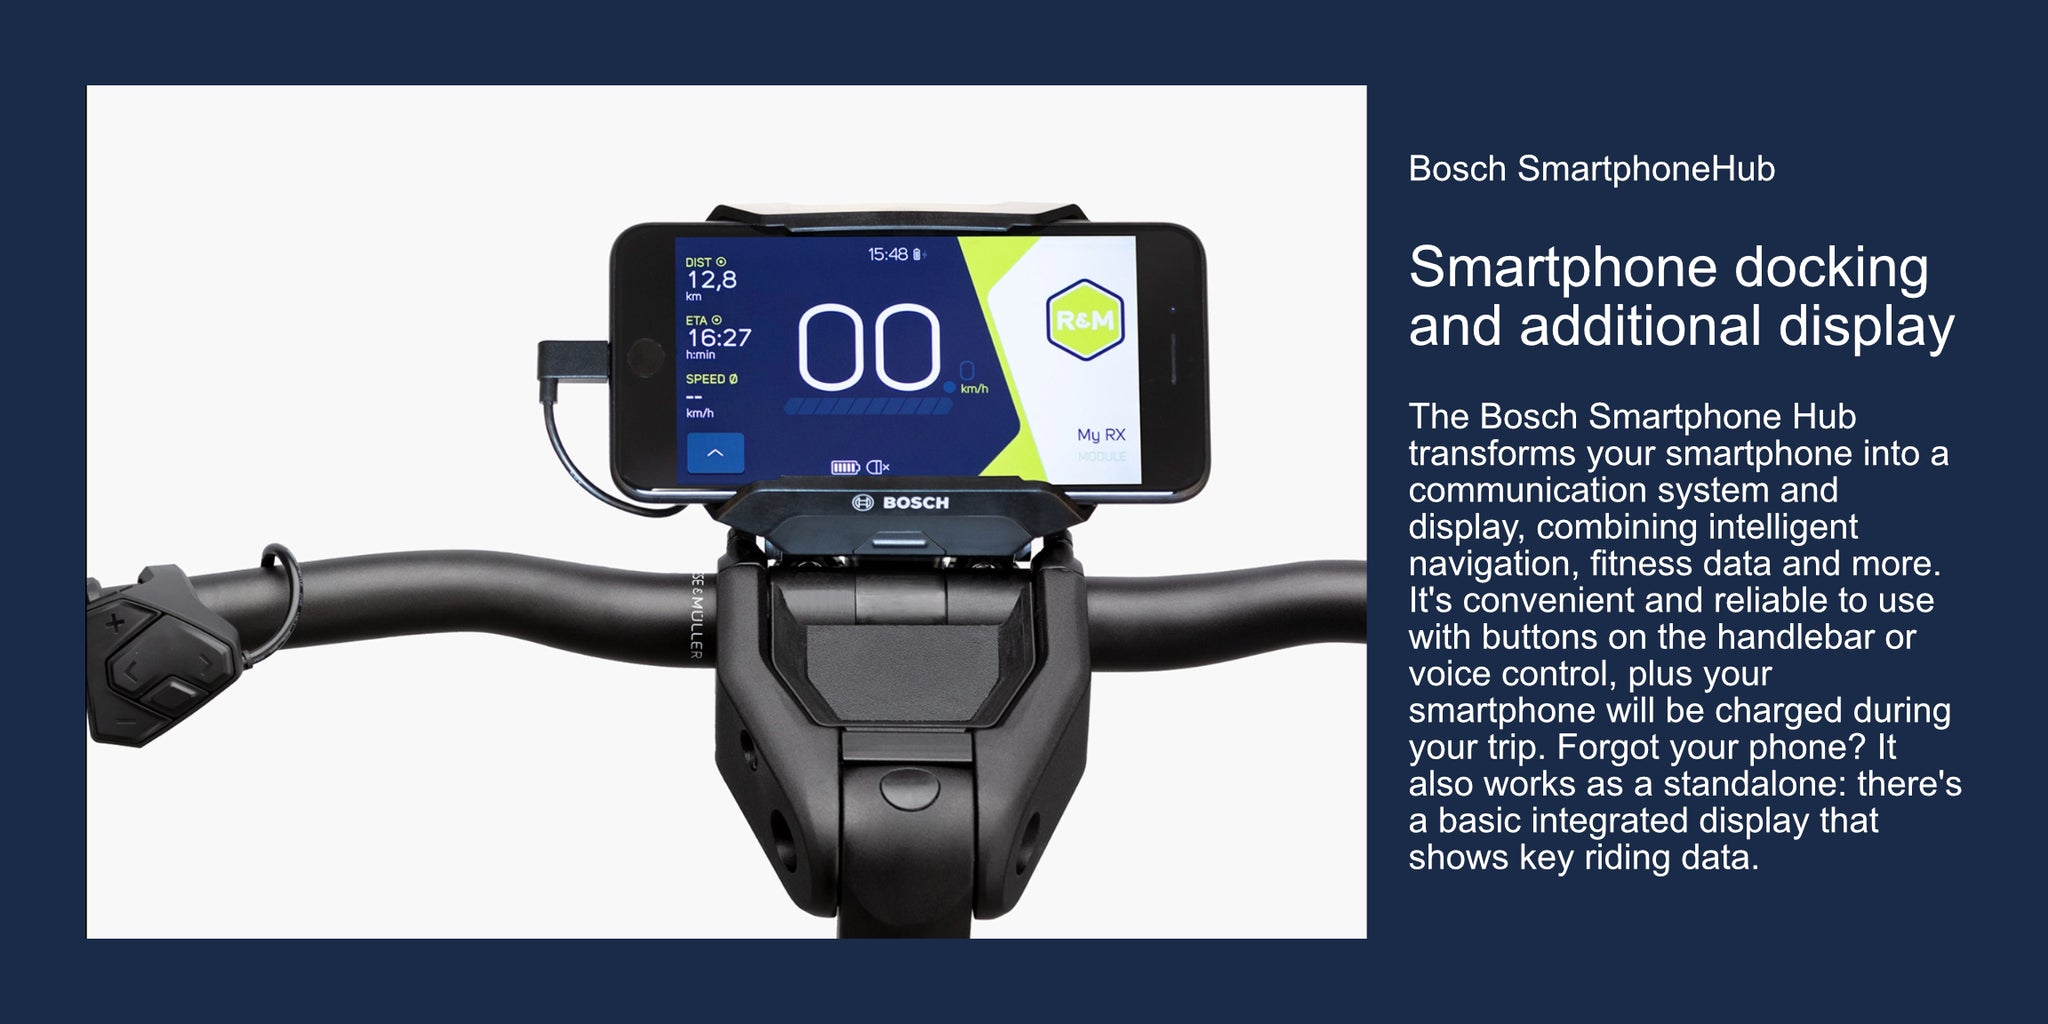 Bosch SmartphoneHubSmartphone docking and additional displayThe Bosch Smartphone Hub transforms your smartphone into a  communication system and display, combining intelligent navigation, fitness data and more. It's convenient and reliable to use with buttons on the handlebar or voice control, plus your smartphone will be charged during your trip. Forgot your phone? It also works as a standalone: there's  a basic integrated display that shows key riding data.